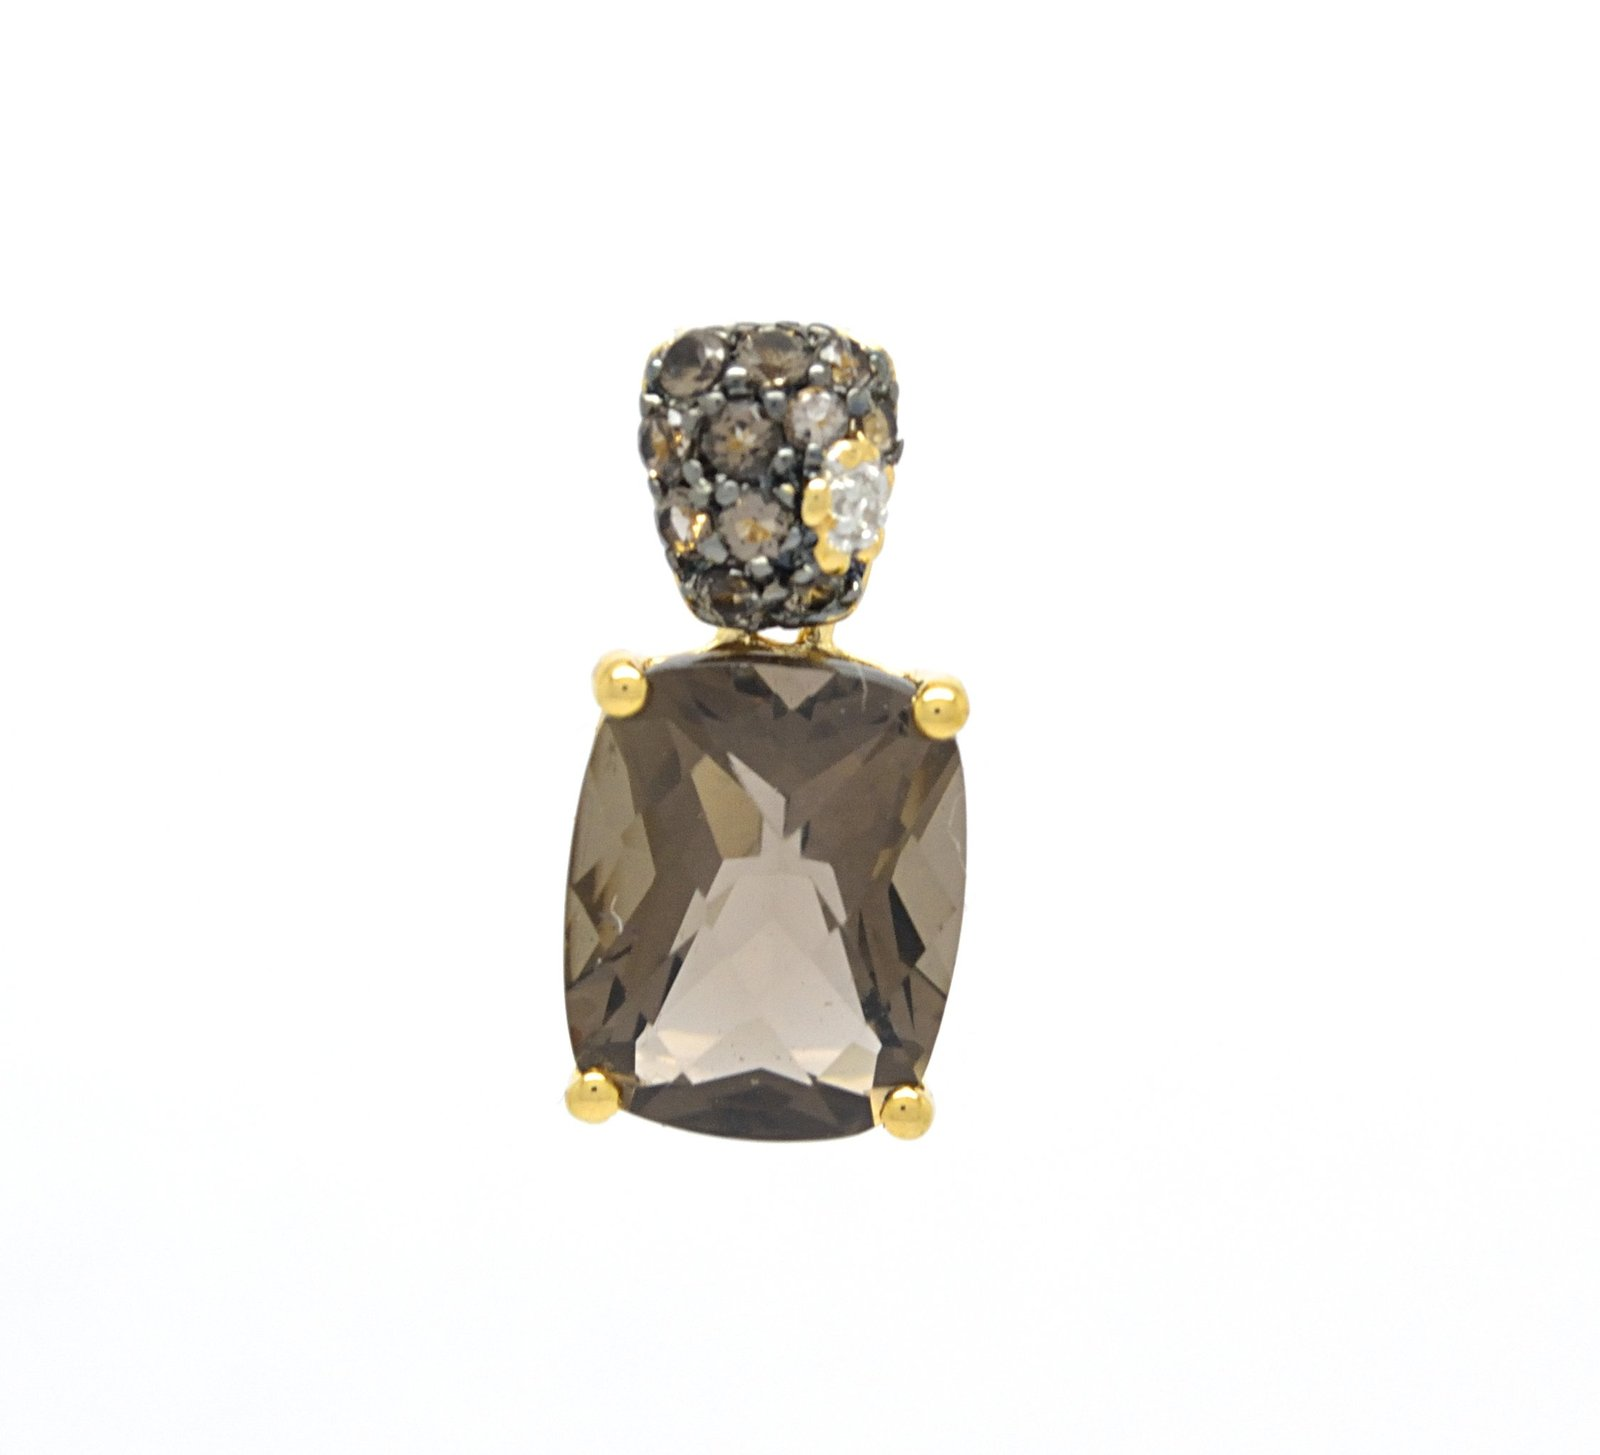 925 Sterling Silver Gold Tone Plated Genuine Smoky Quartz Pendant with Silver Ch